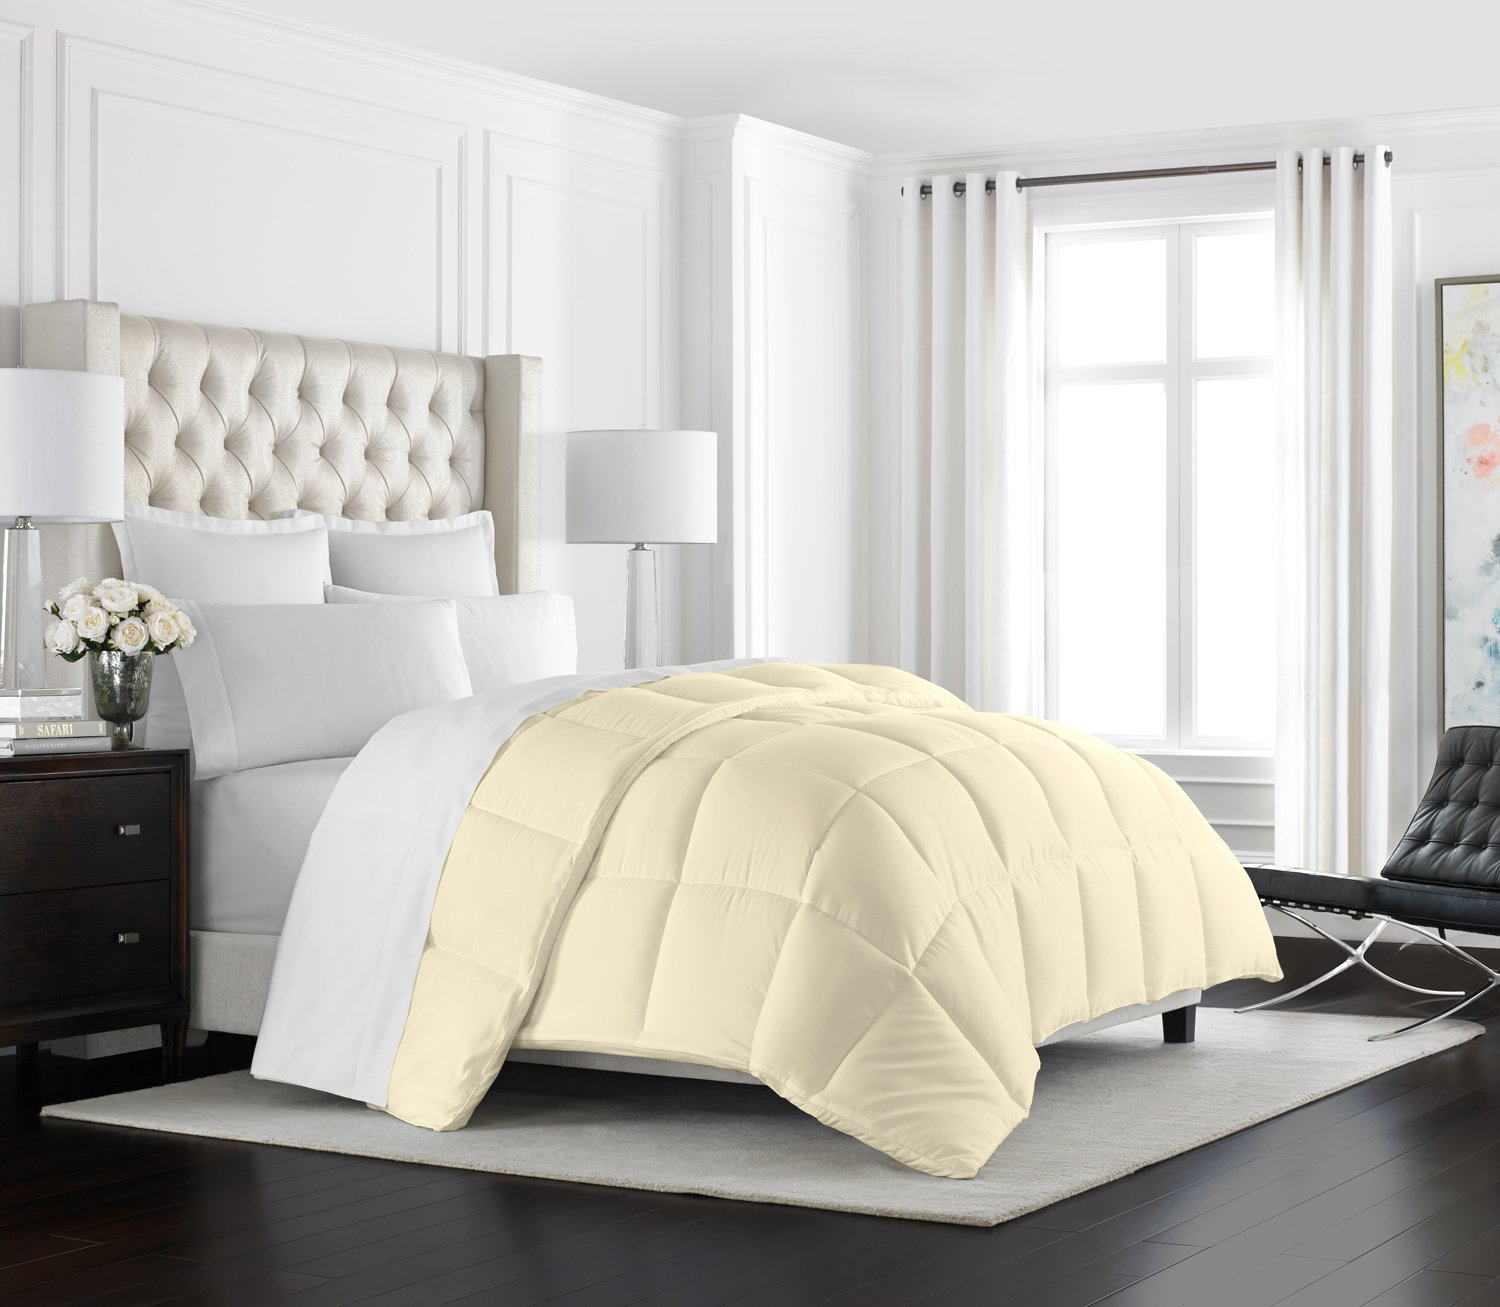 Beckham Hotel Collection Comforter Ivory - Full/Queen